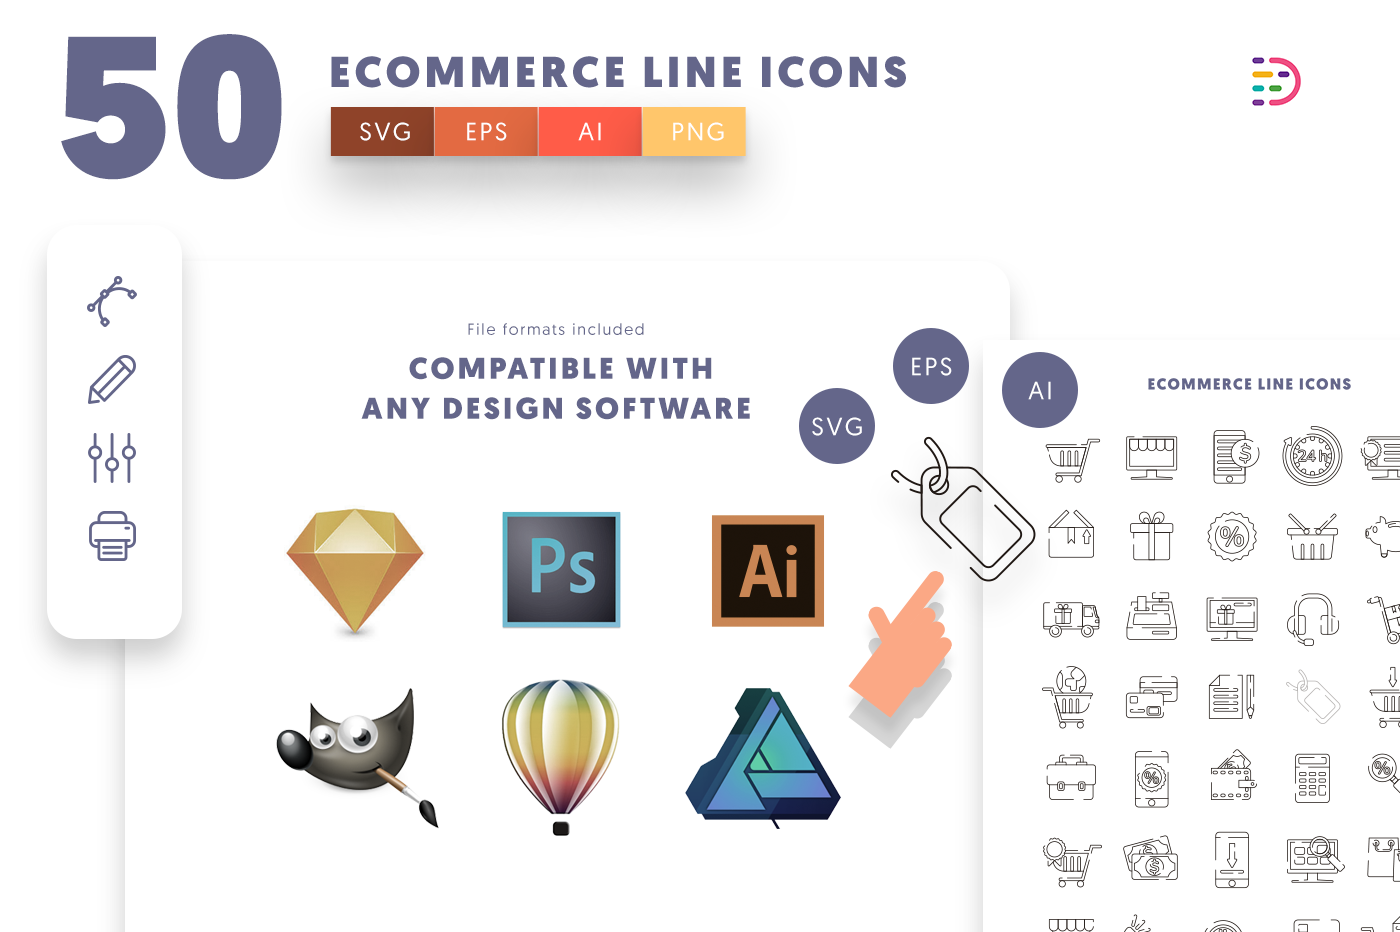 full vector 50 Ecommerce Line Icons EPS, SVG, PNG